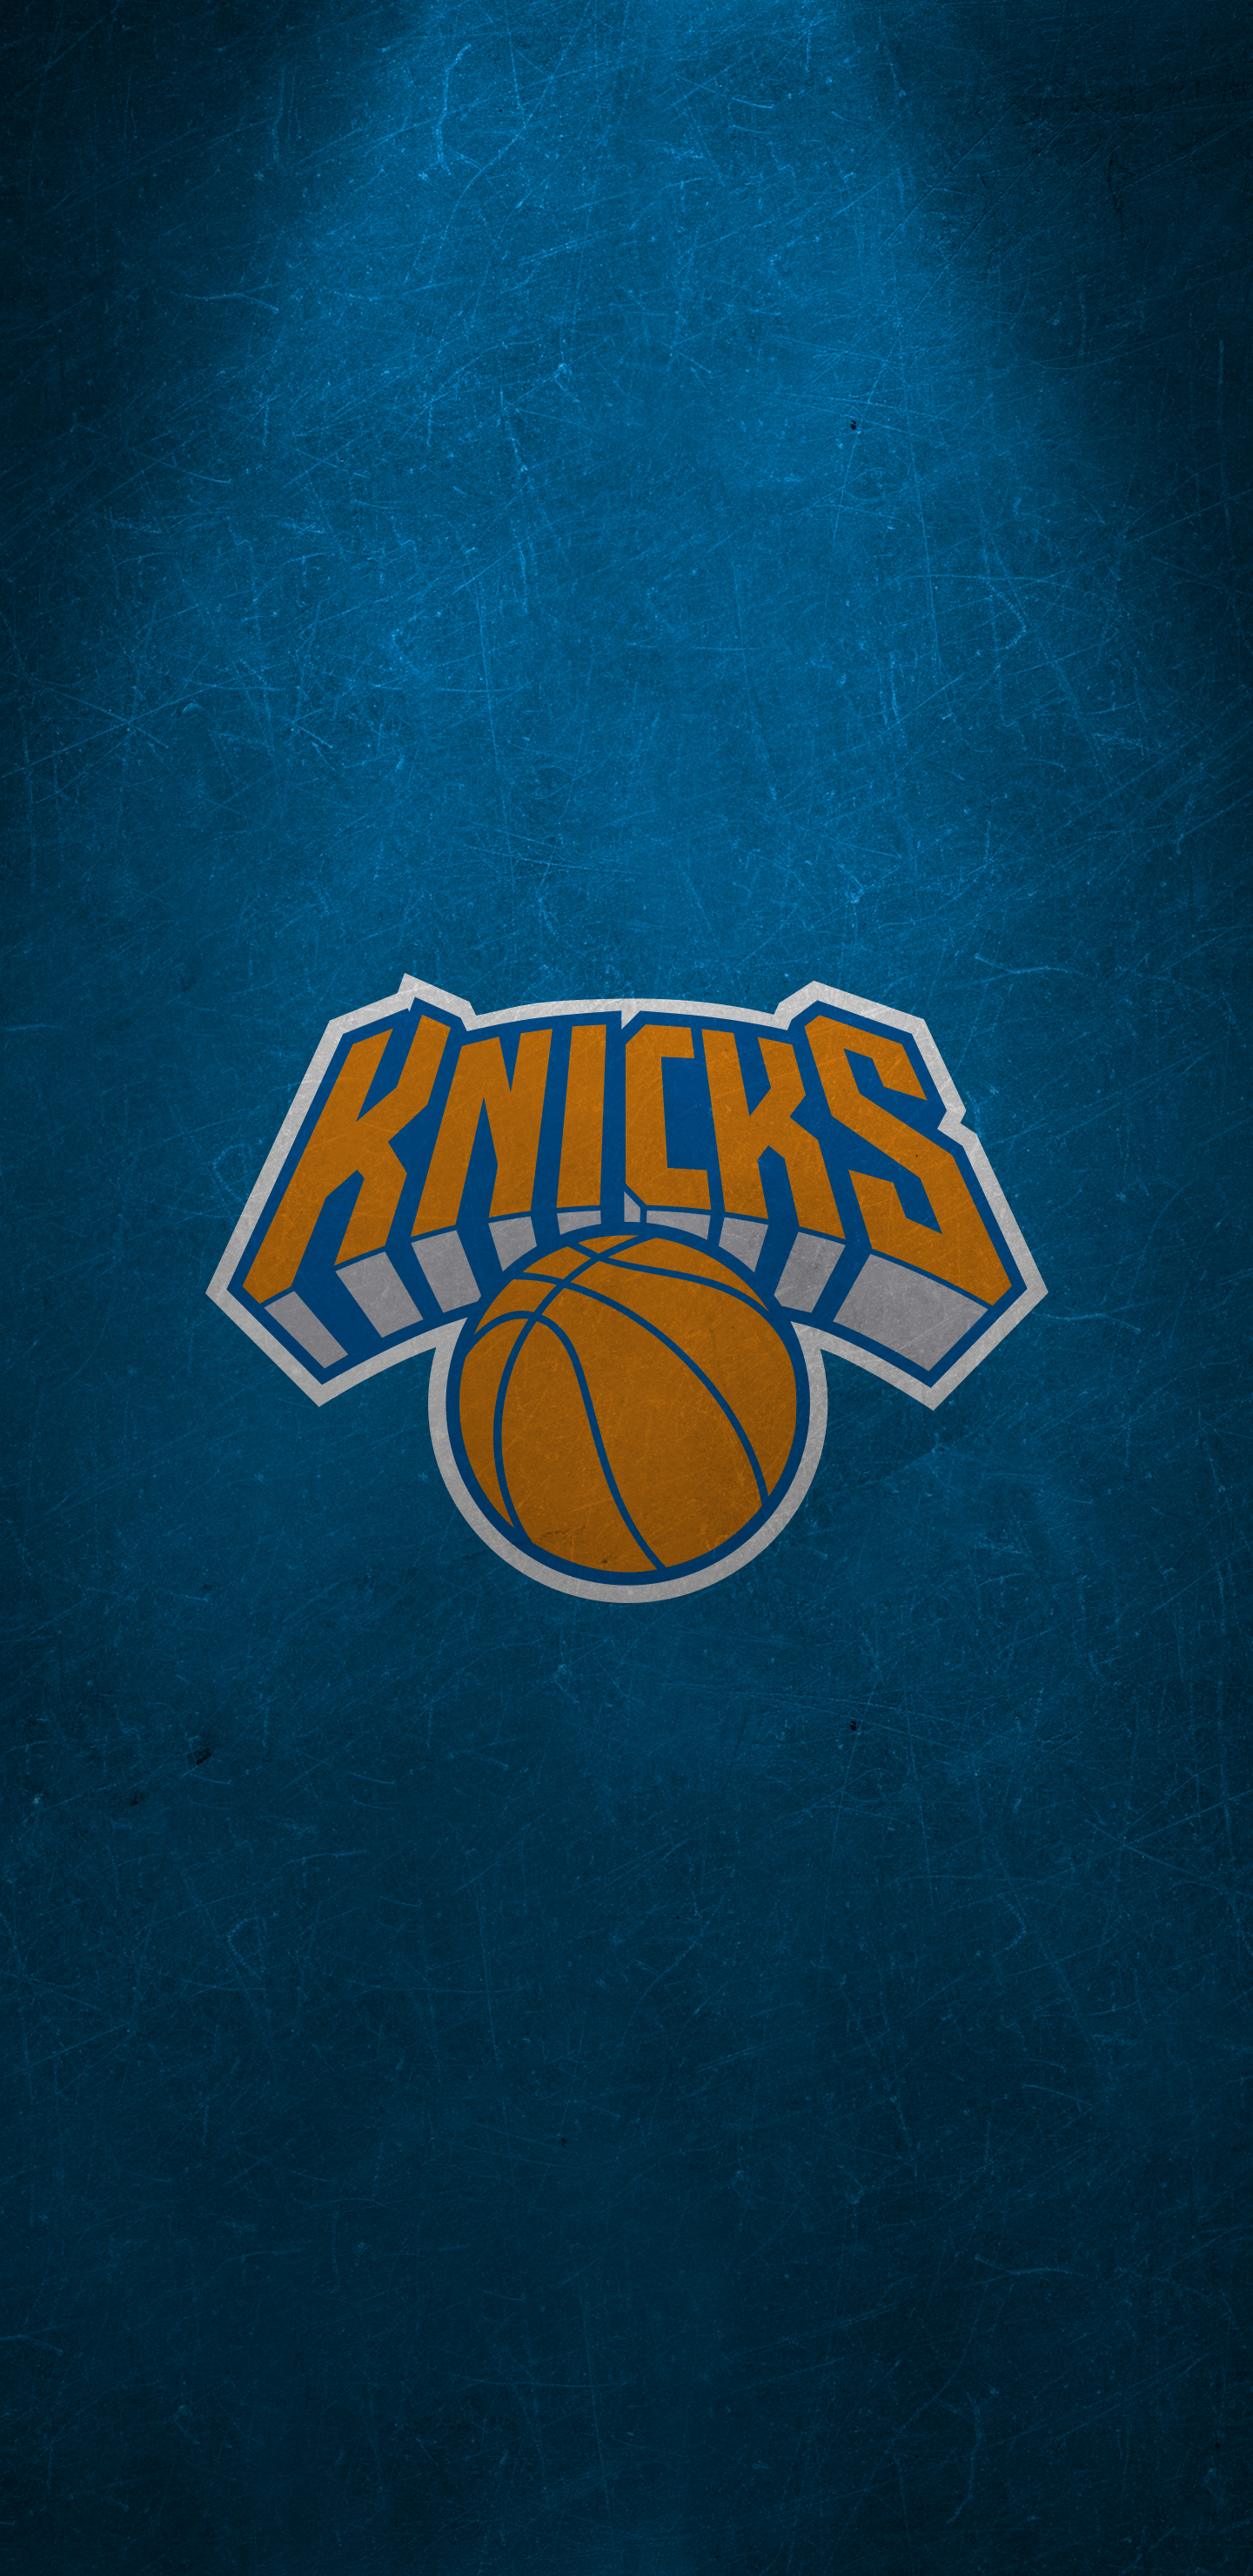 Escudo New York Knicks